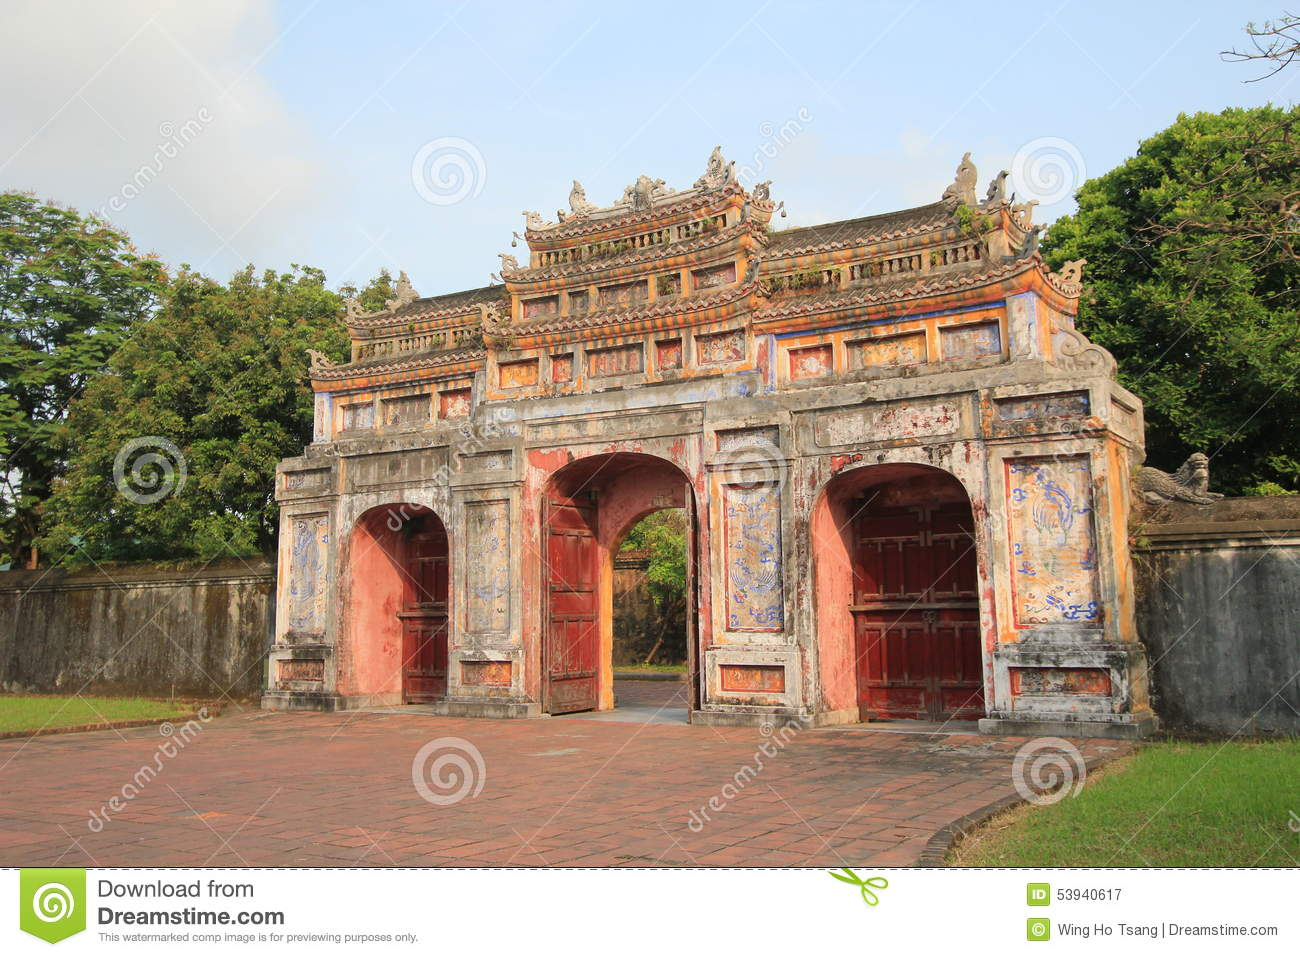 The Complex of Hue Monuments in Vietnam